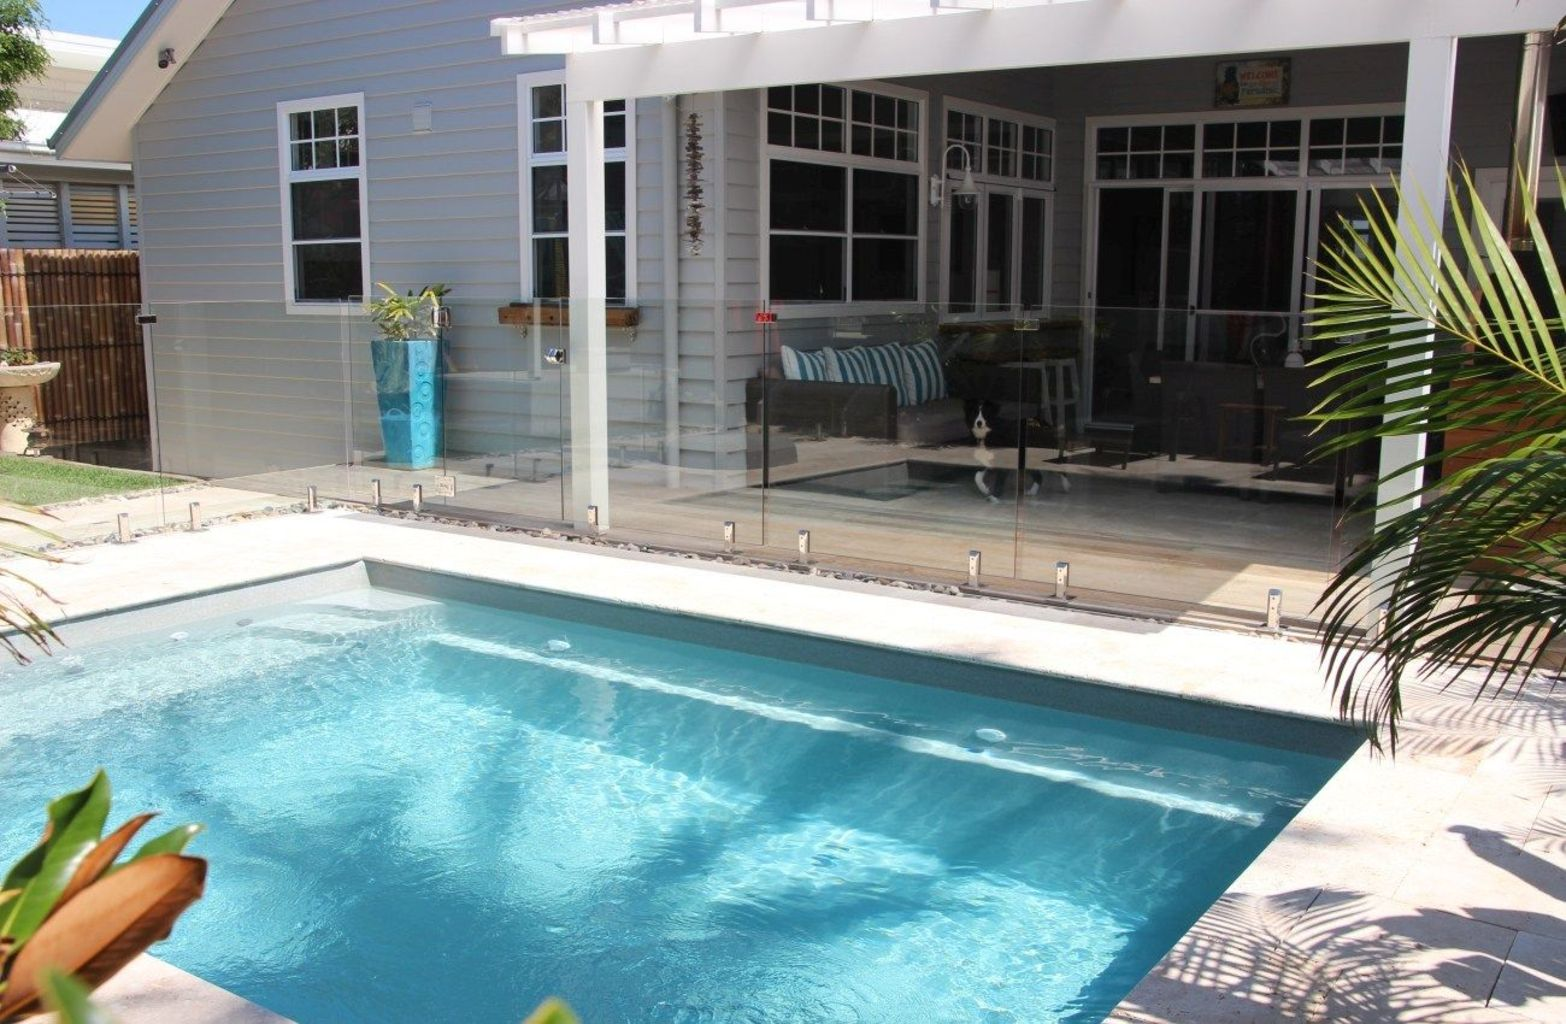 Small swimming pools made for small spaces and tight budgets Part 30